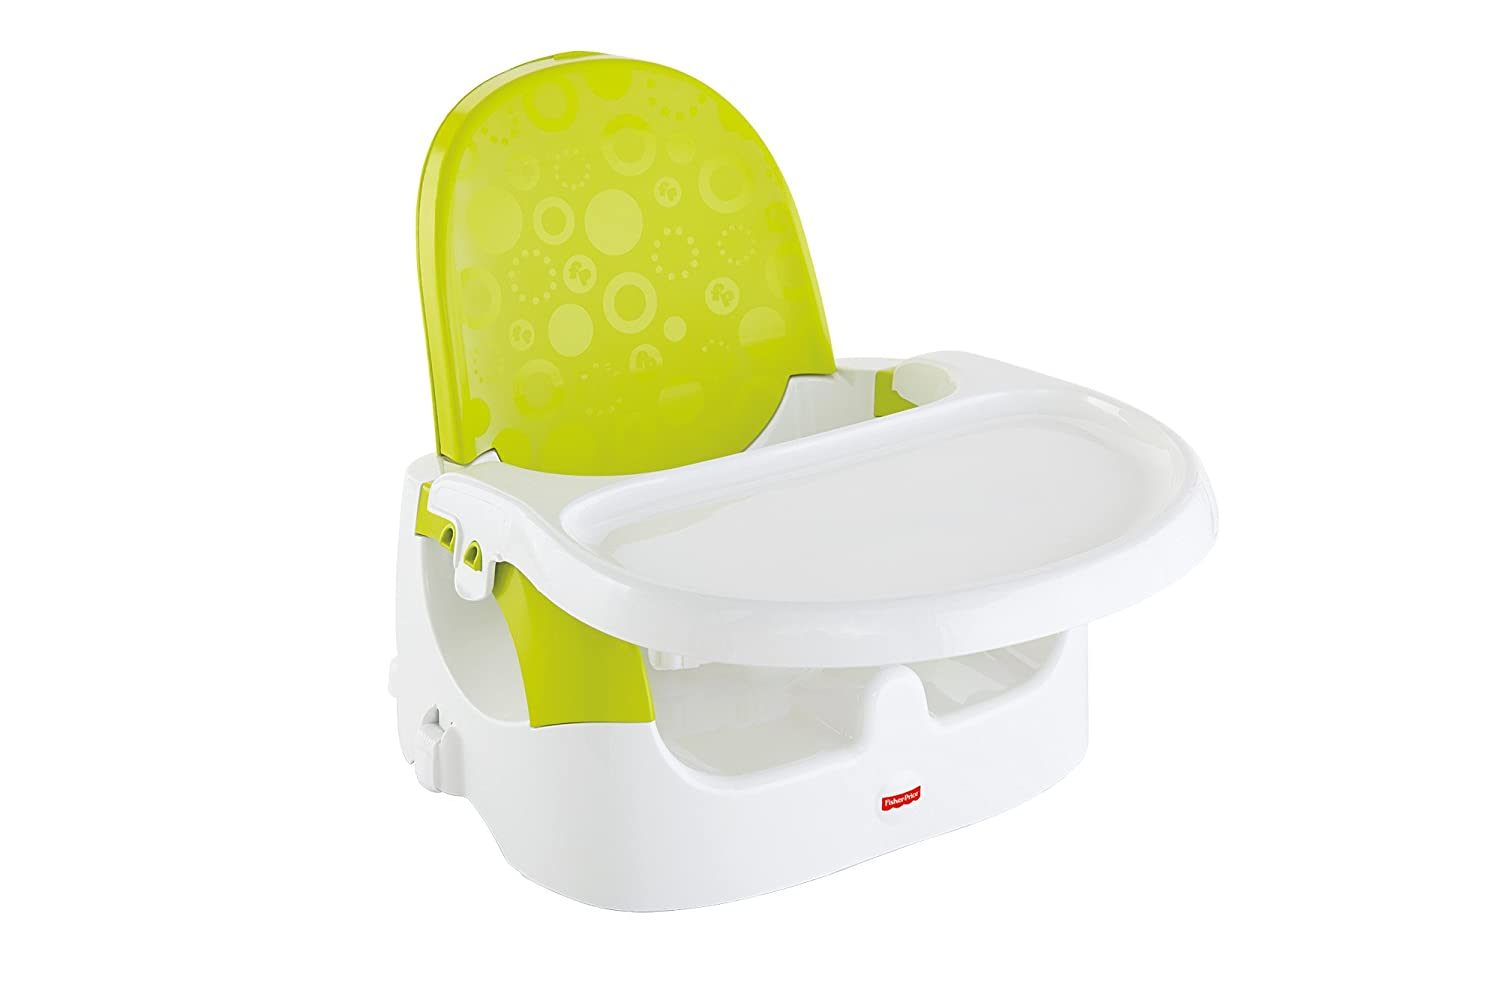 Fisher-Price Quick-Clean 'n Go Portable Booster [Amazon Exclusive] Amazonca/FISNE BCD26